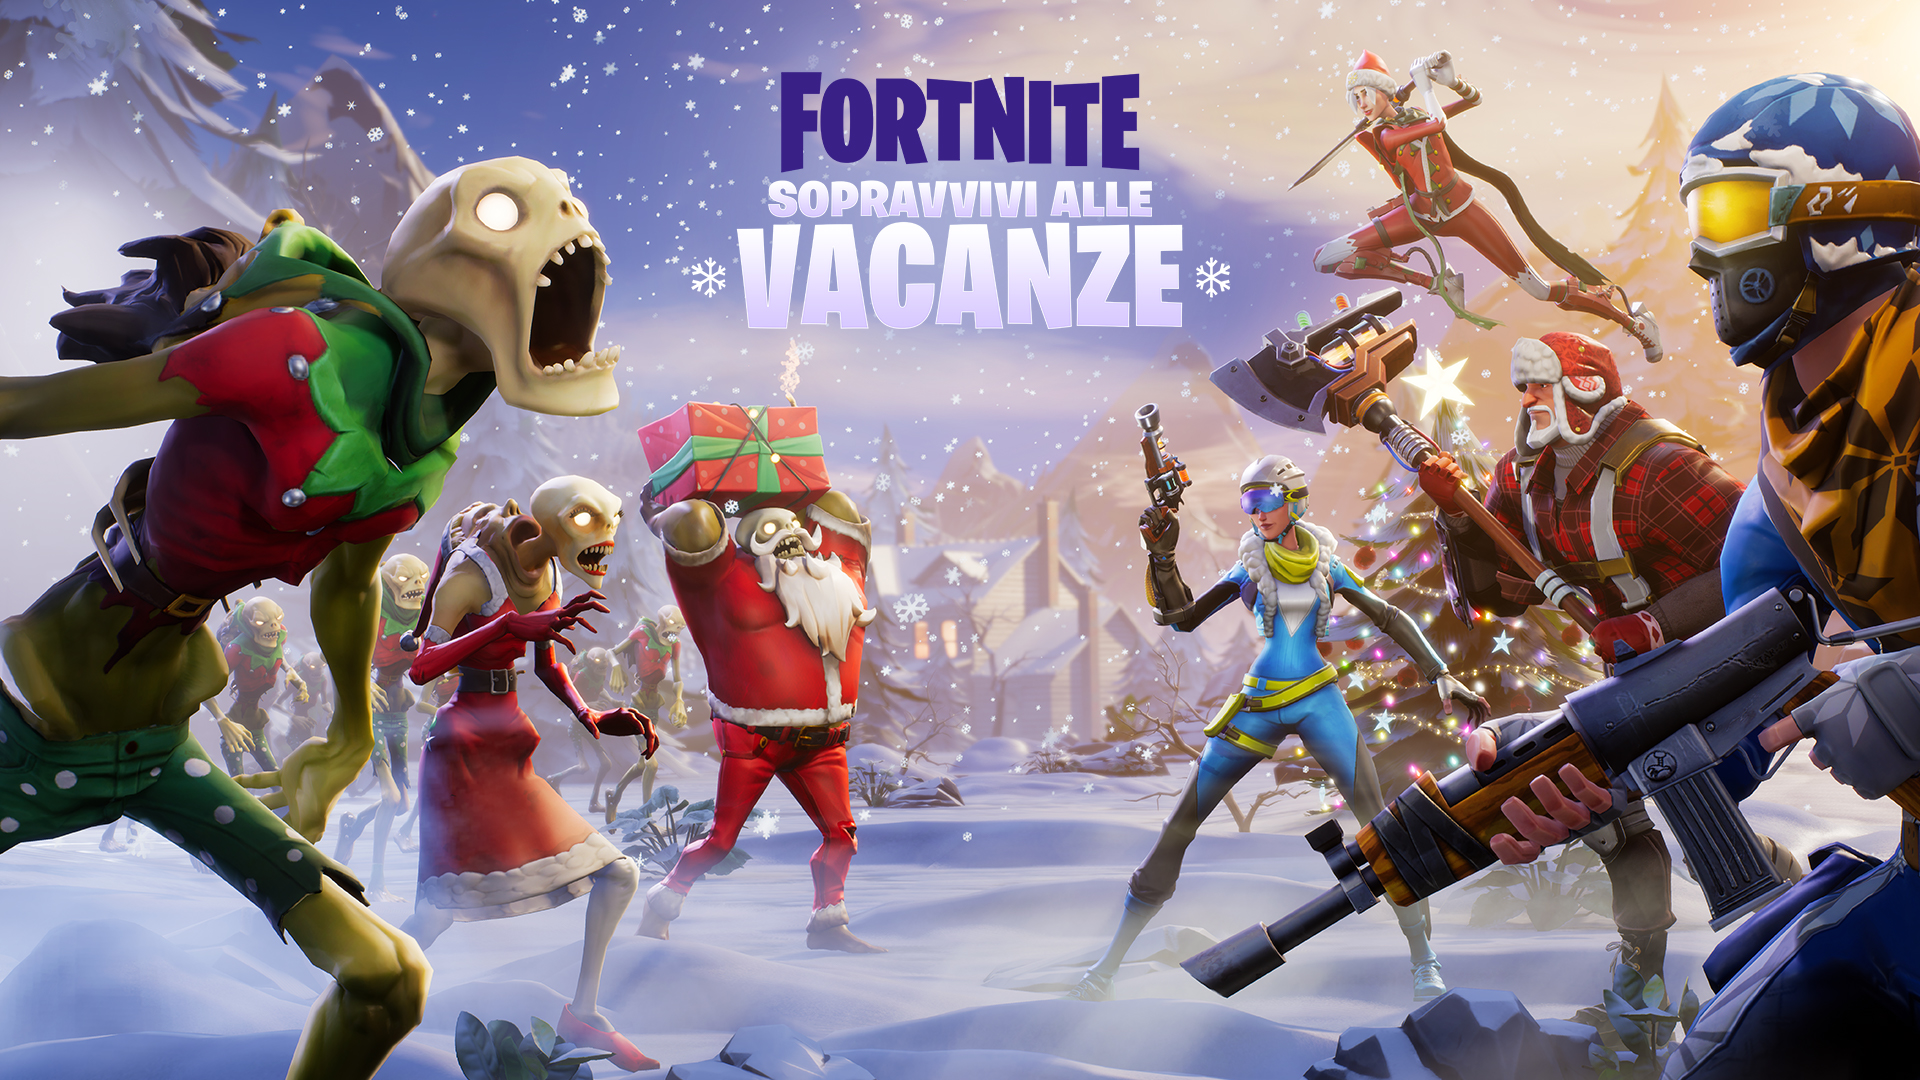 fortnite salva il mondo come